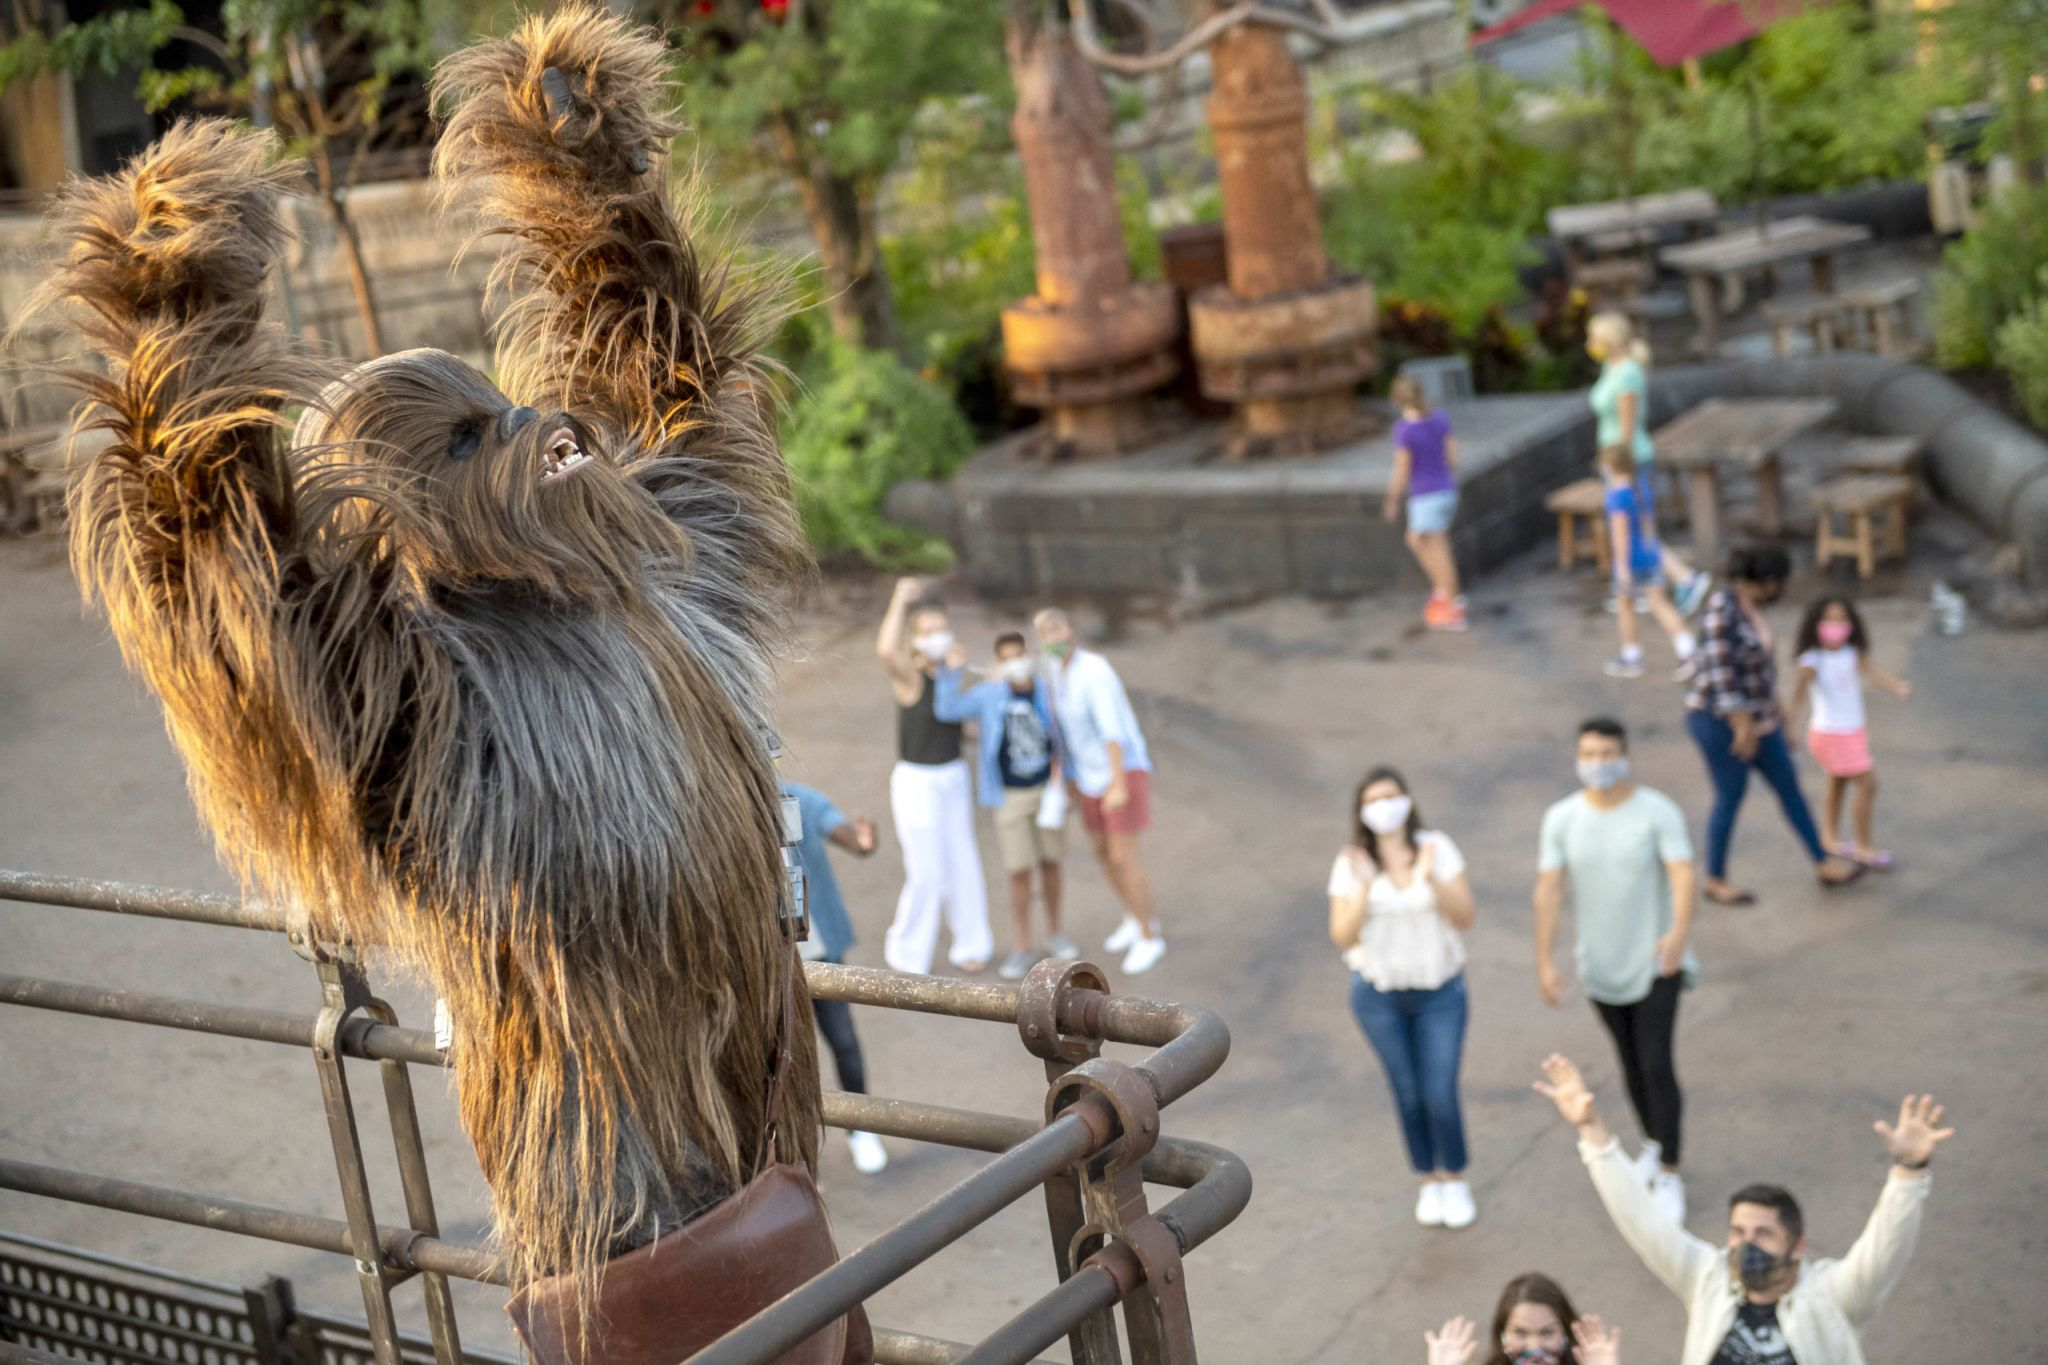 Now that Disneyland is open, Star Wars: Galaxy's Edge has changed